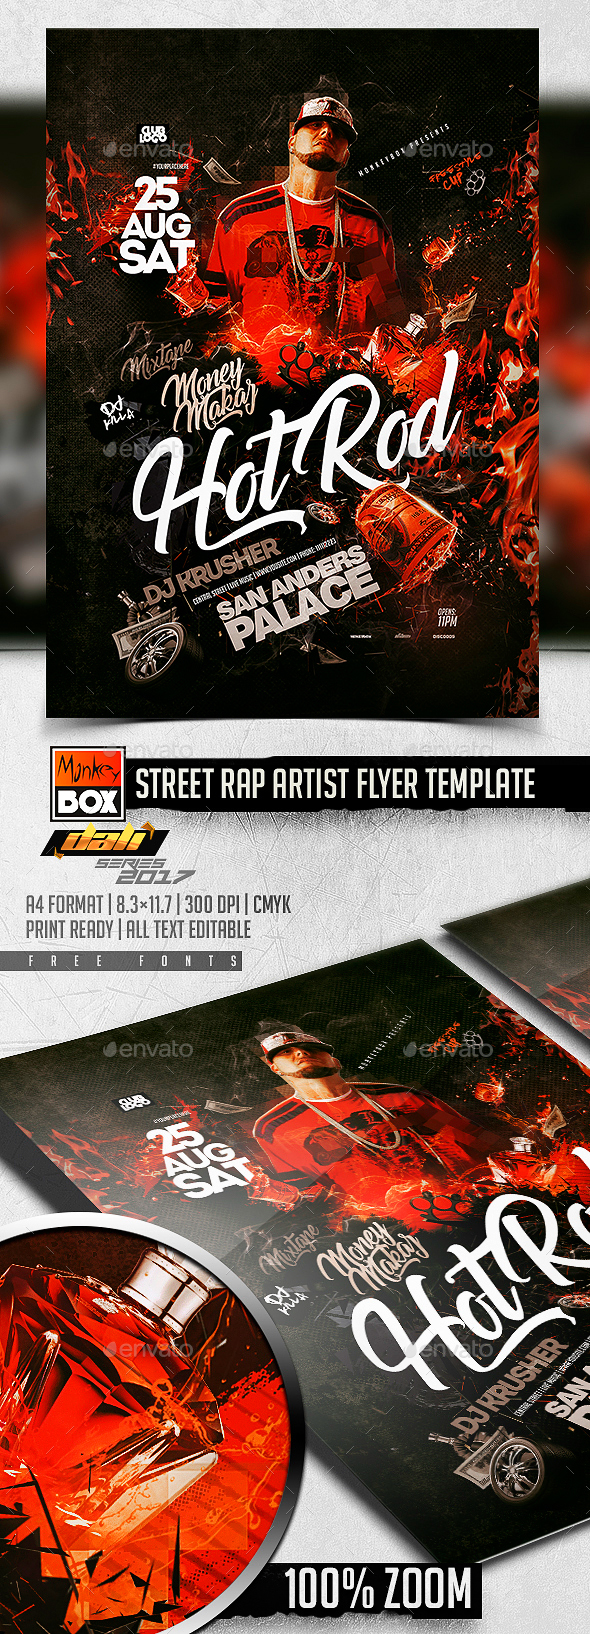 Street Rap Artist Flyer Template - Events Flyers